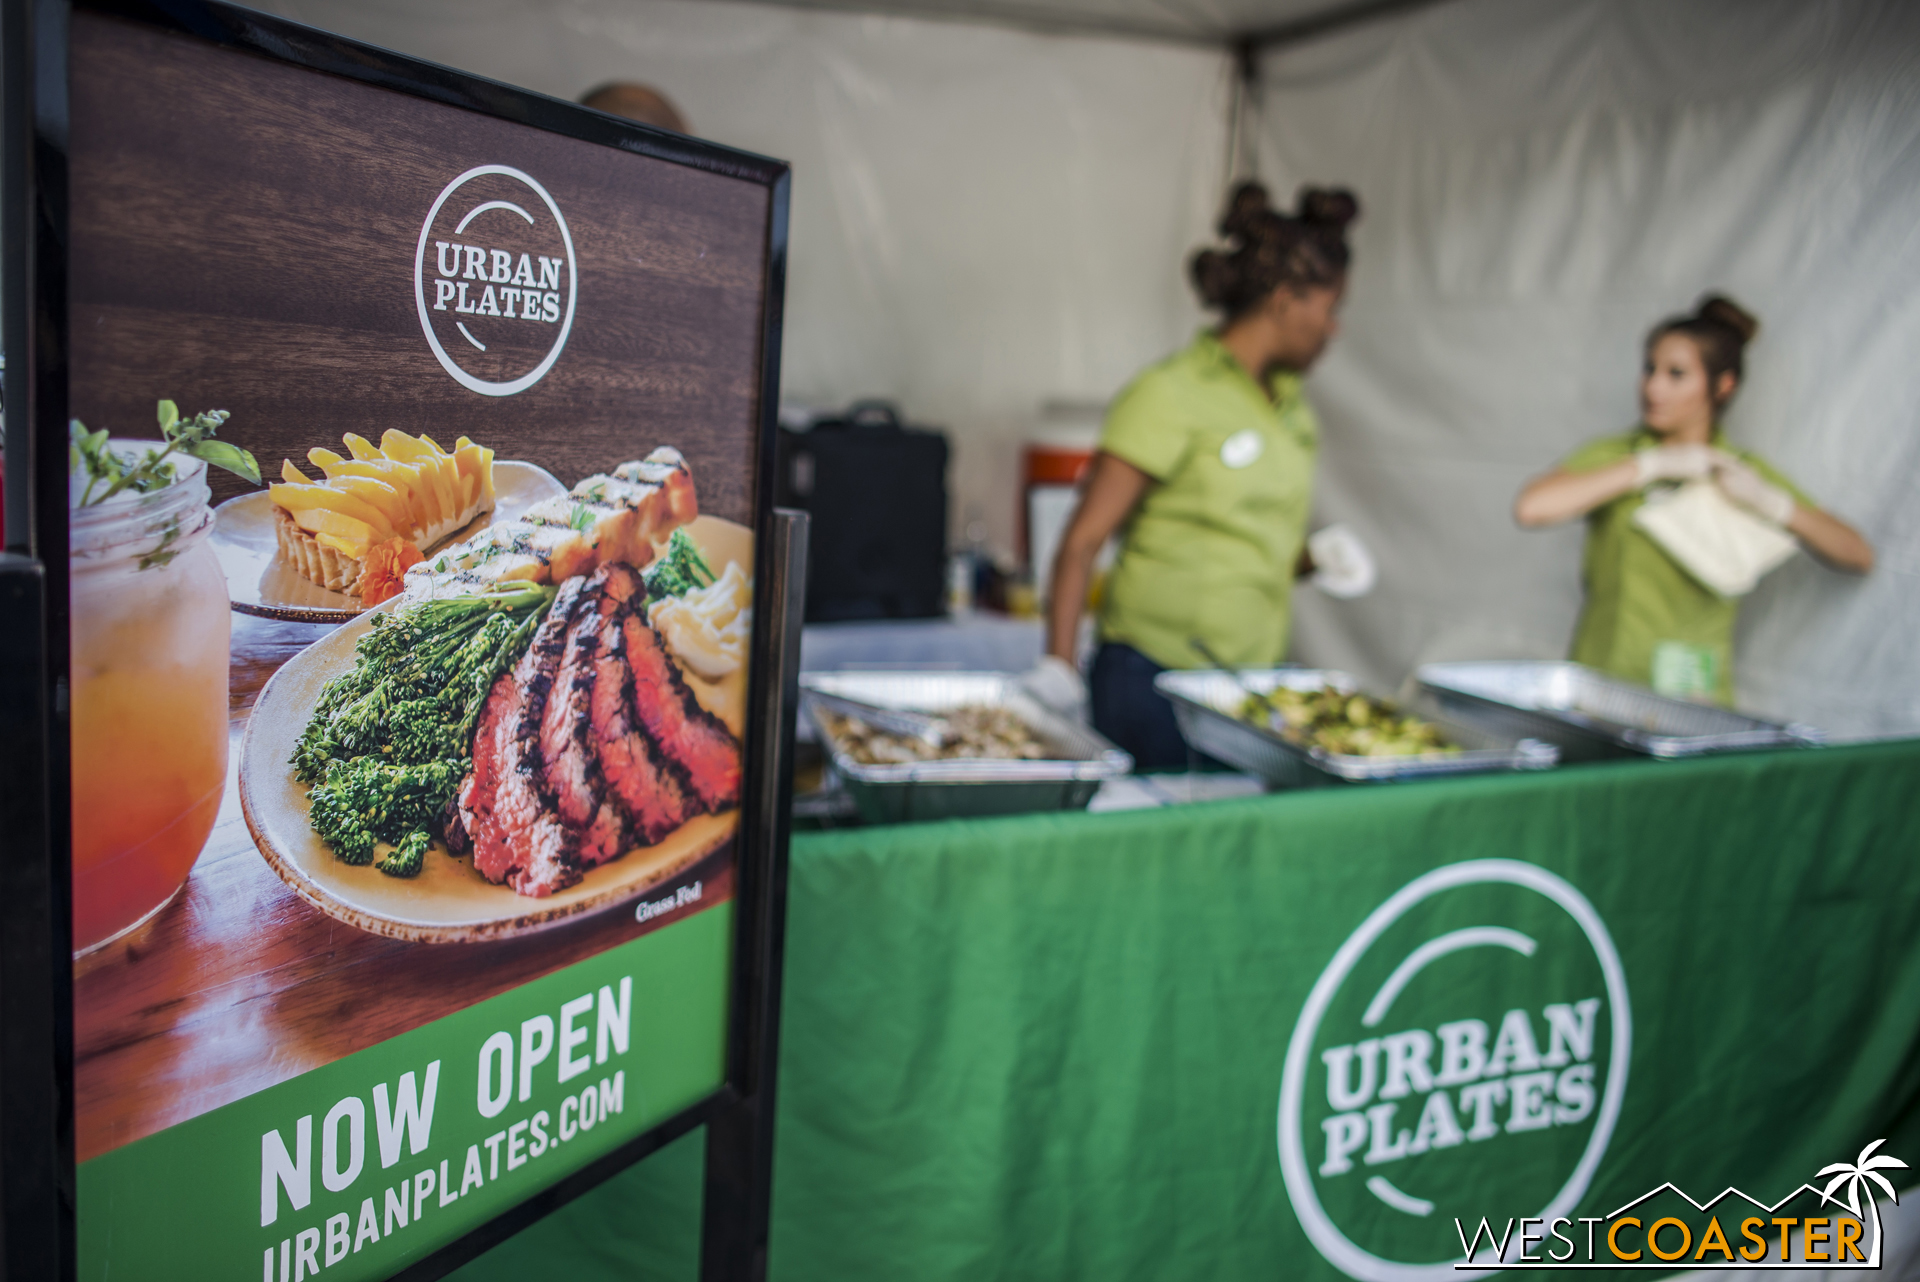 Urban Plates has recently opened up a location nearby and was giving out samples of some of its healthy-minded offerings.